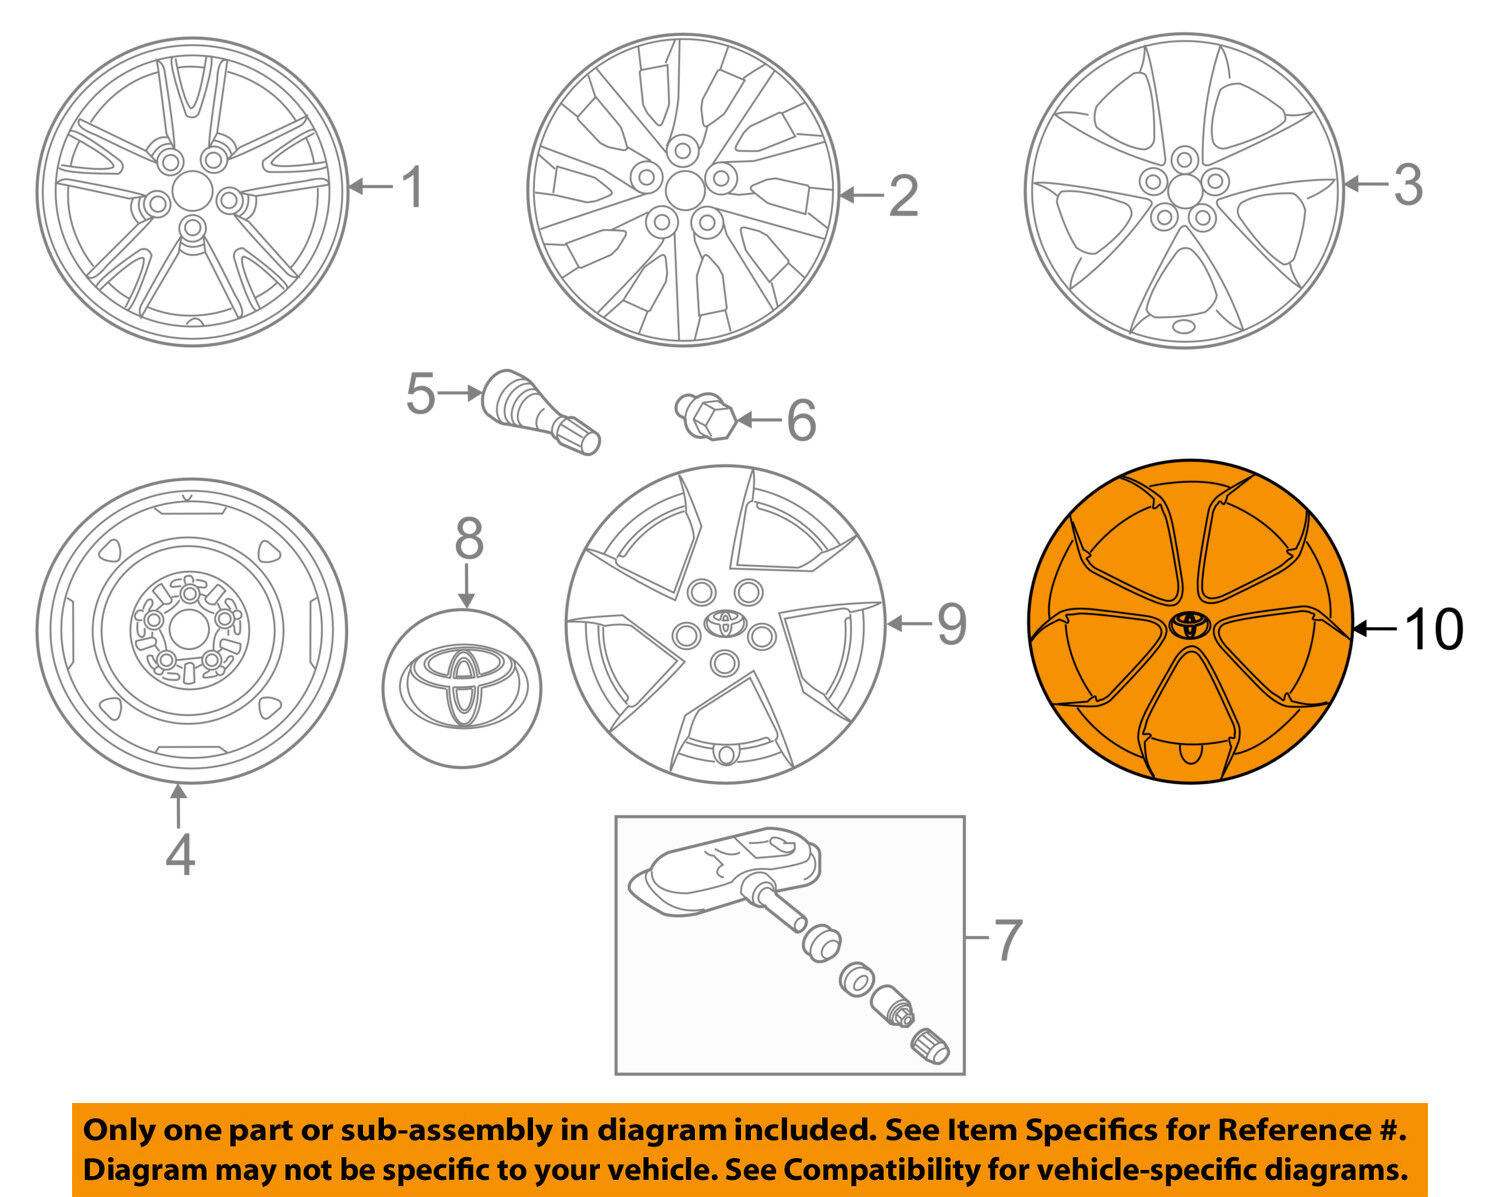 Toyota Oem 4260247060 12 13 Prius Wheel Cover Hub Cap 42602 47060 Diagram 1 Of 2only 4 Available